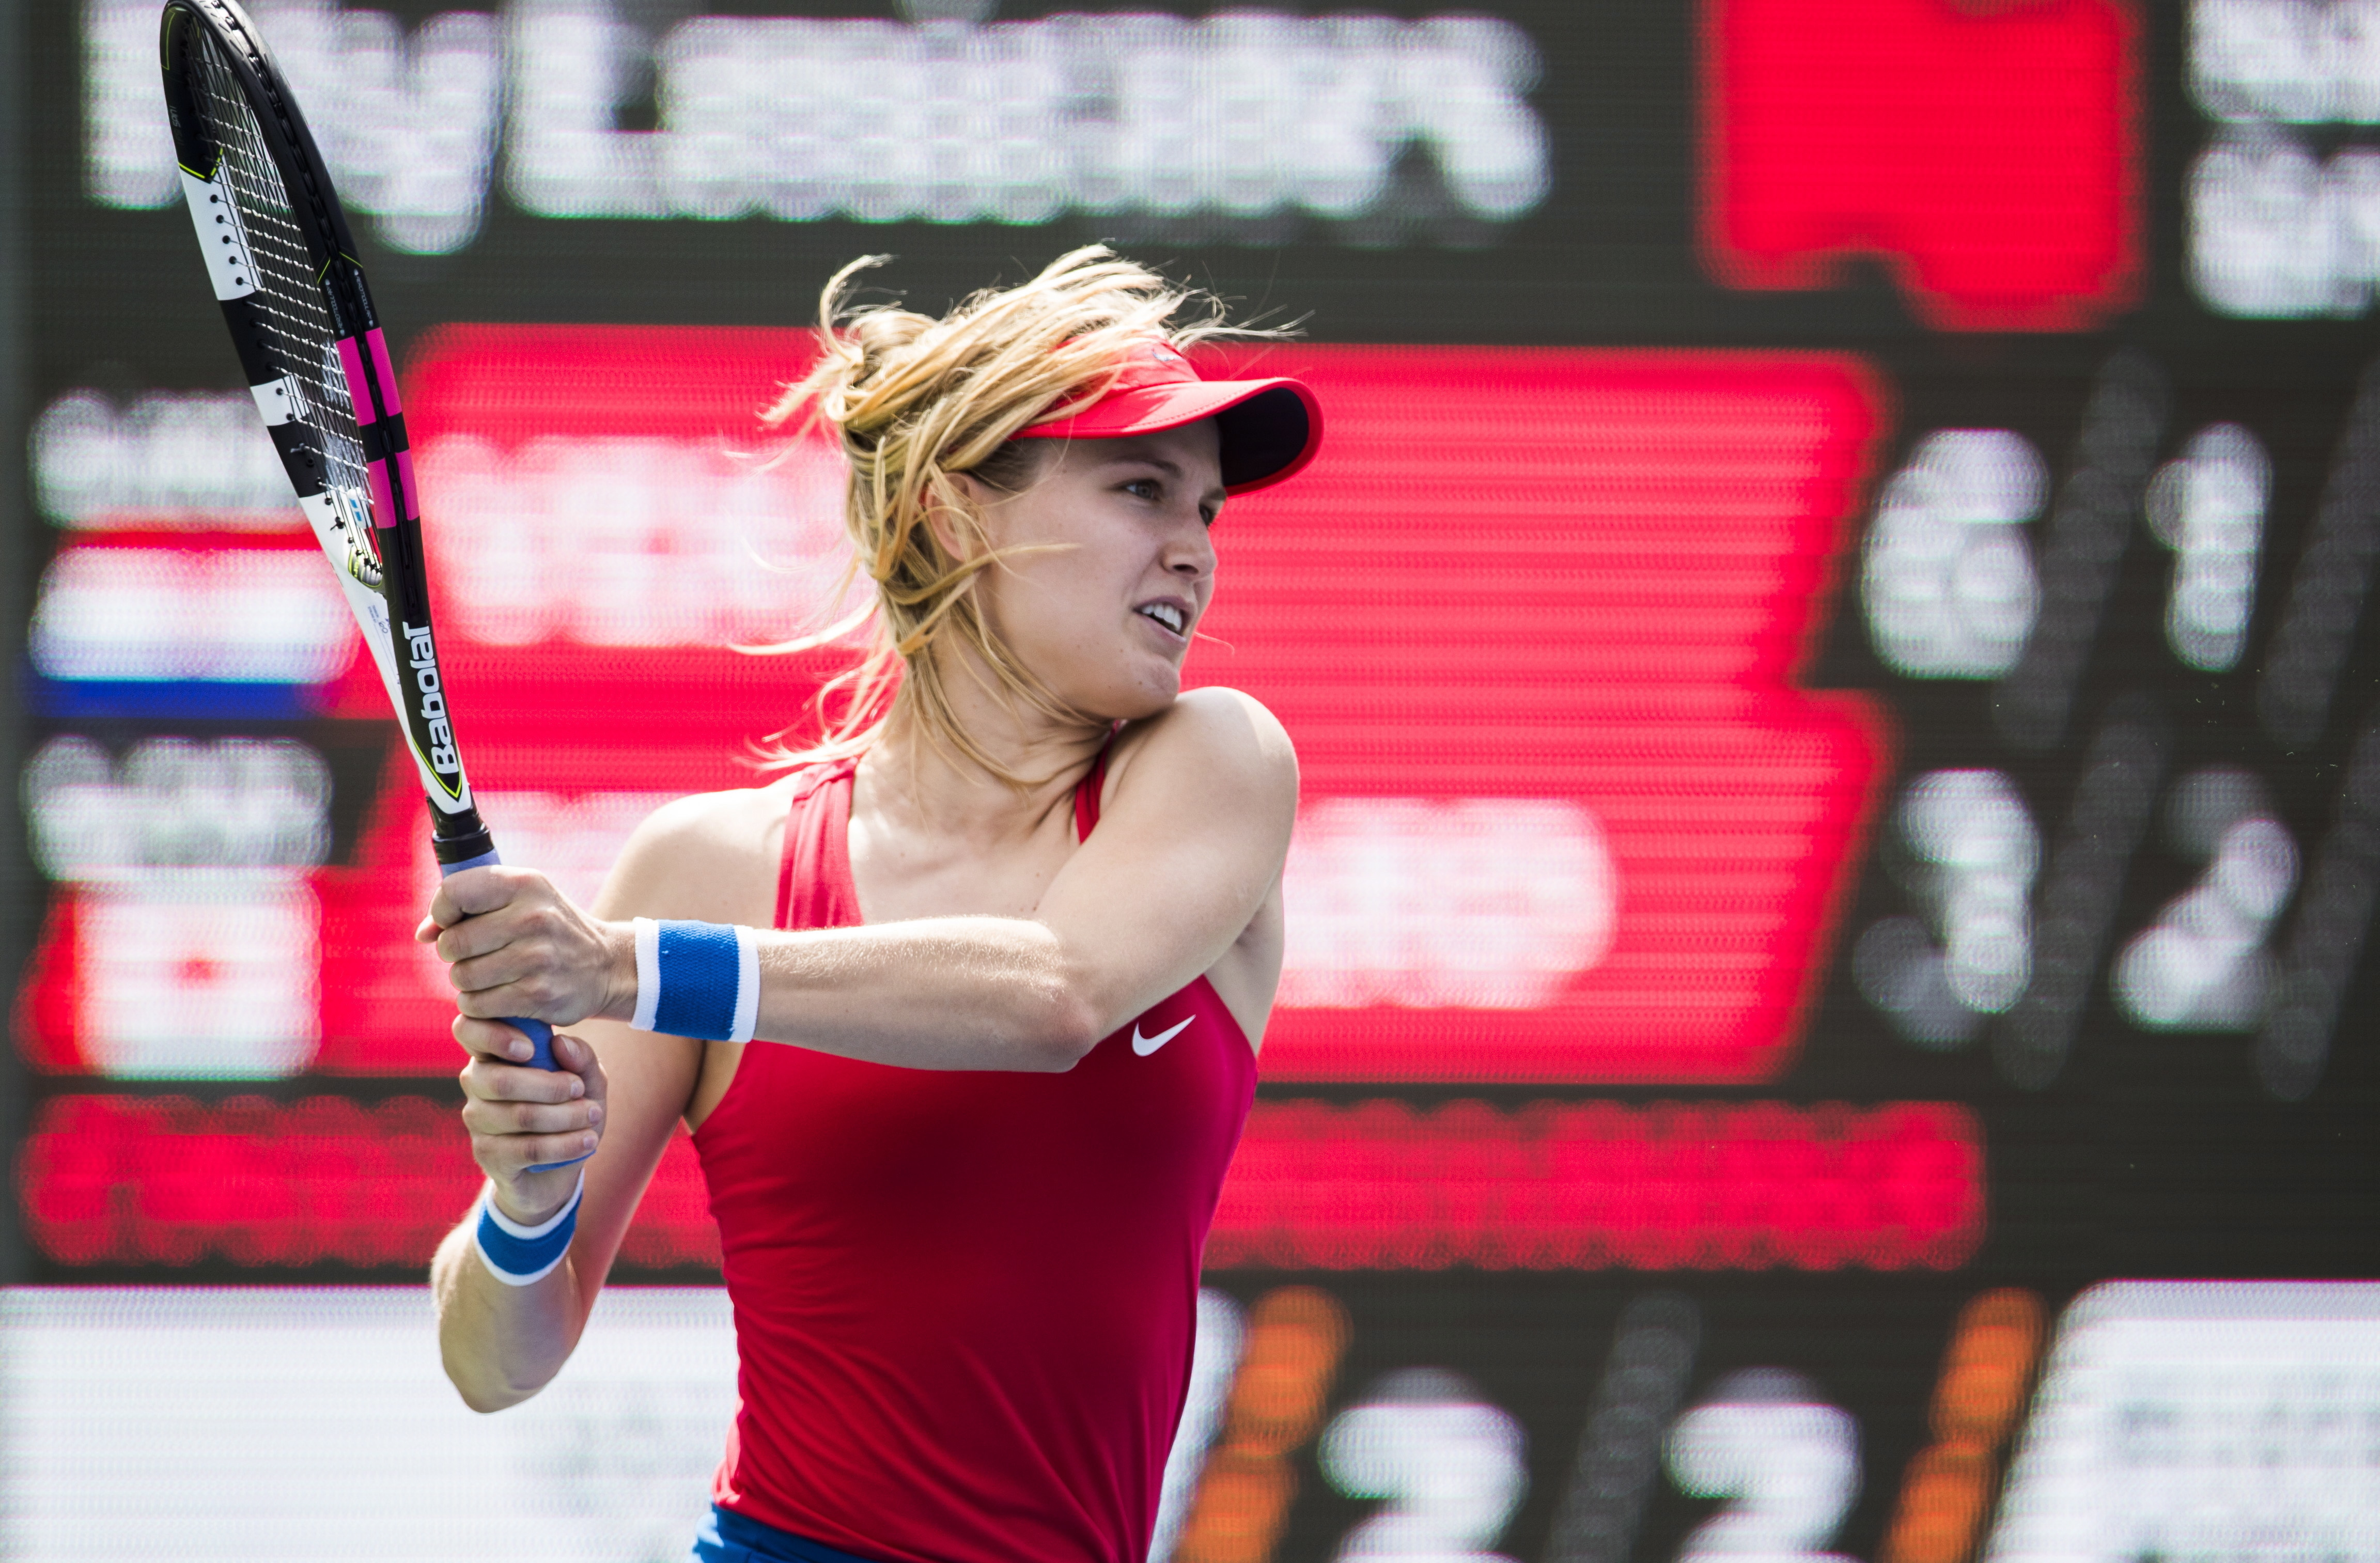 Eugenie Bouchard, of Canada, returns a shot to Donna Vekic, of Croatia, during their first-round match at the Rogers Cup WTA women's tennis tournament in Toronto, Tuesday, Aug. 8, 2017. (Mark Blinch/The Canadian Press via AP)